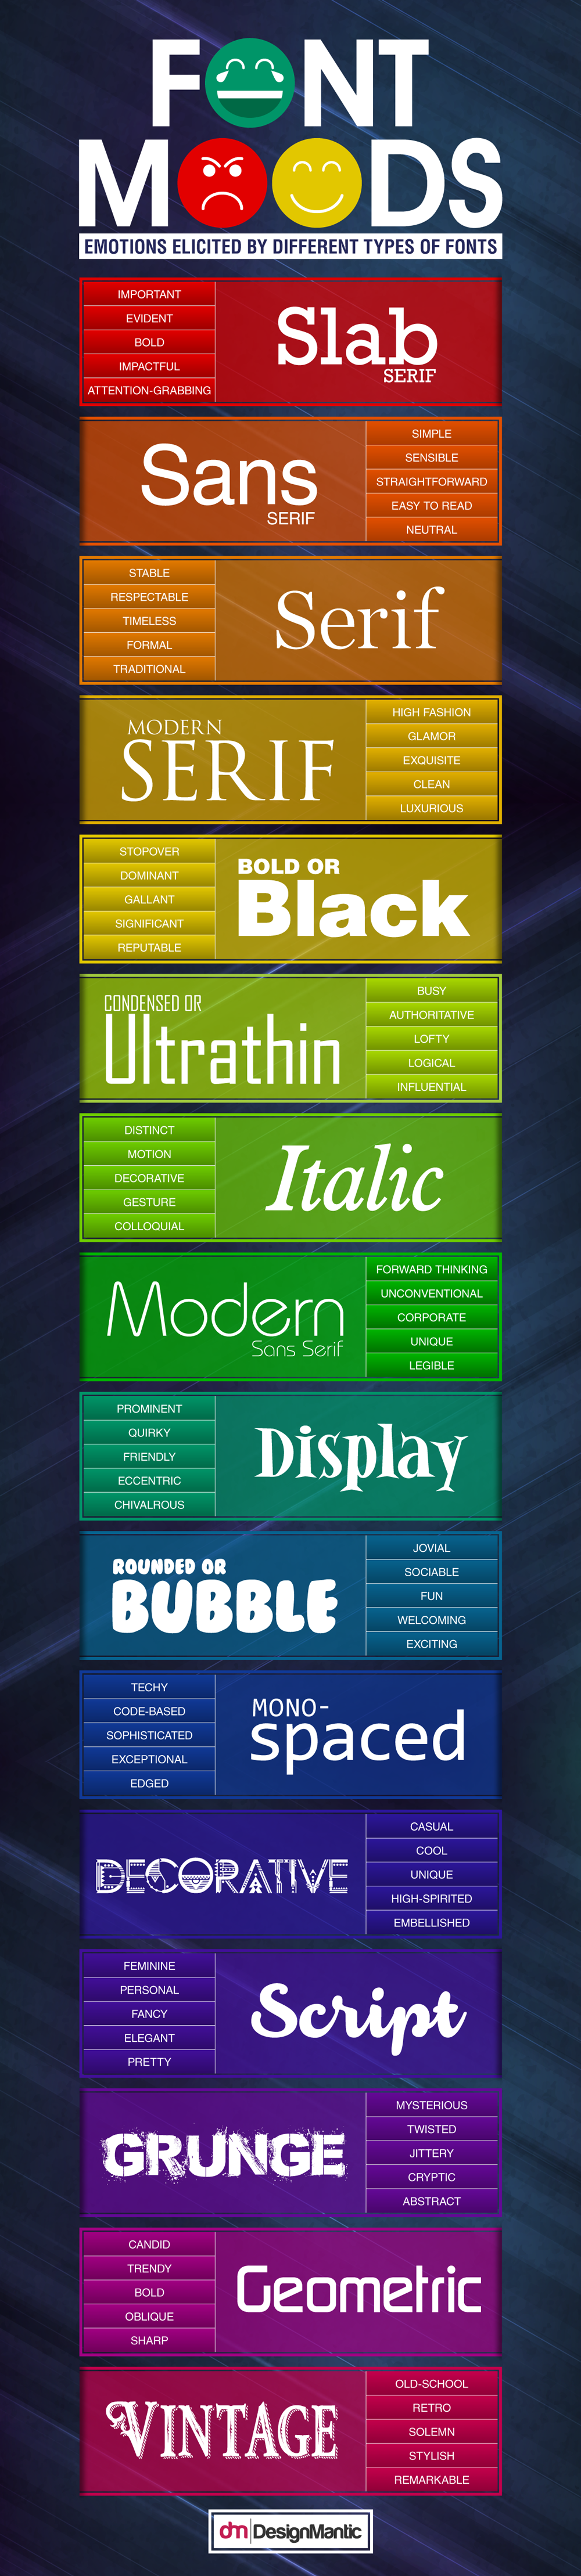 Emotions-Elicited-By-Fonts-2